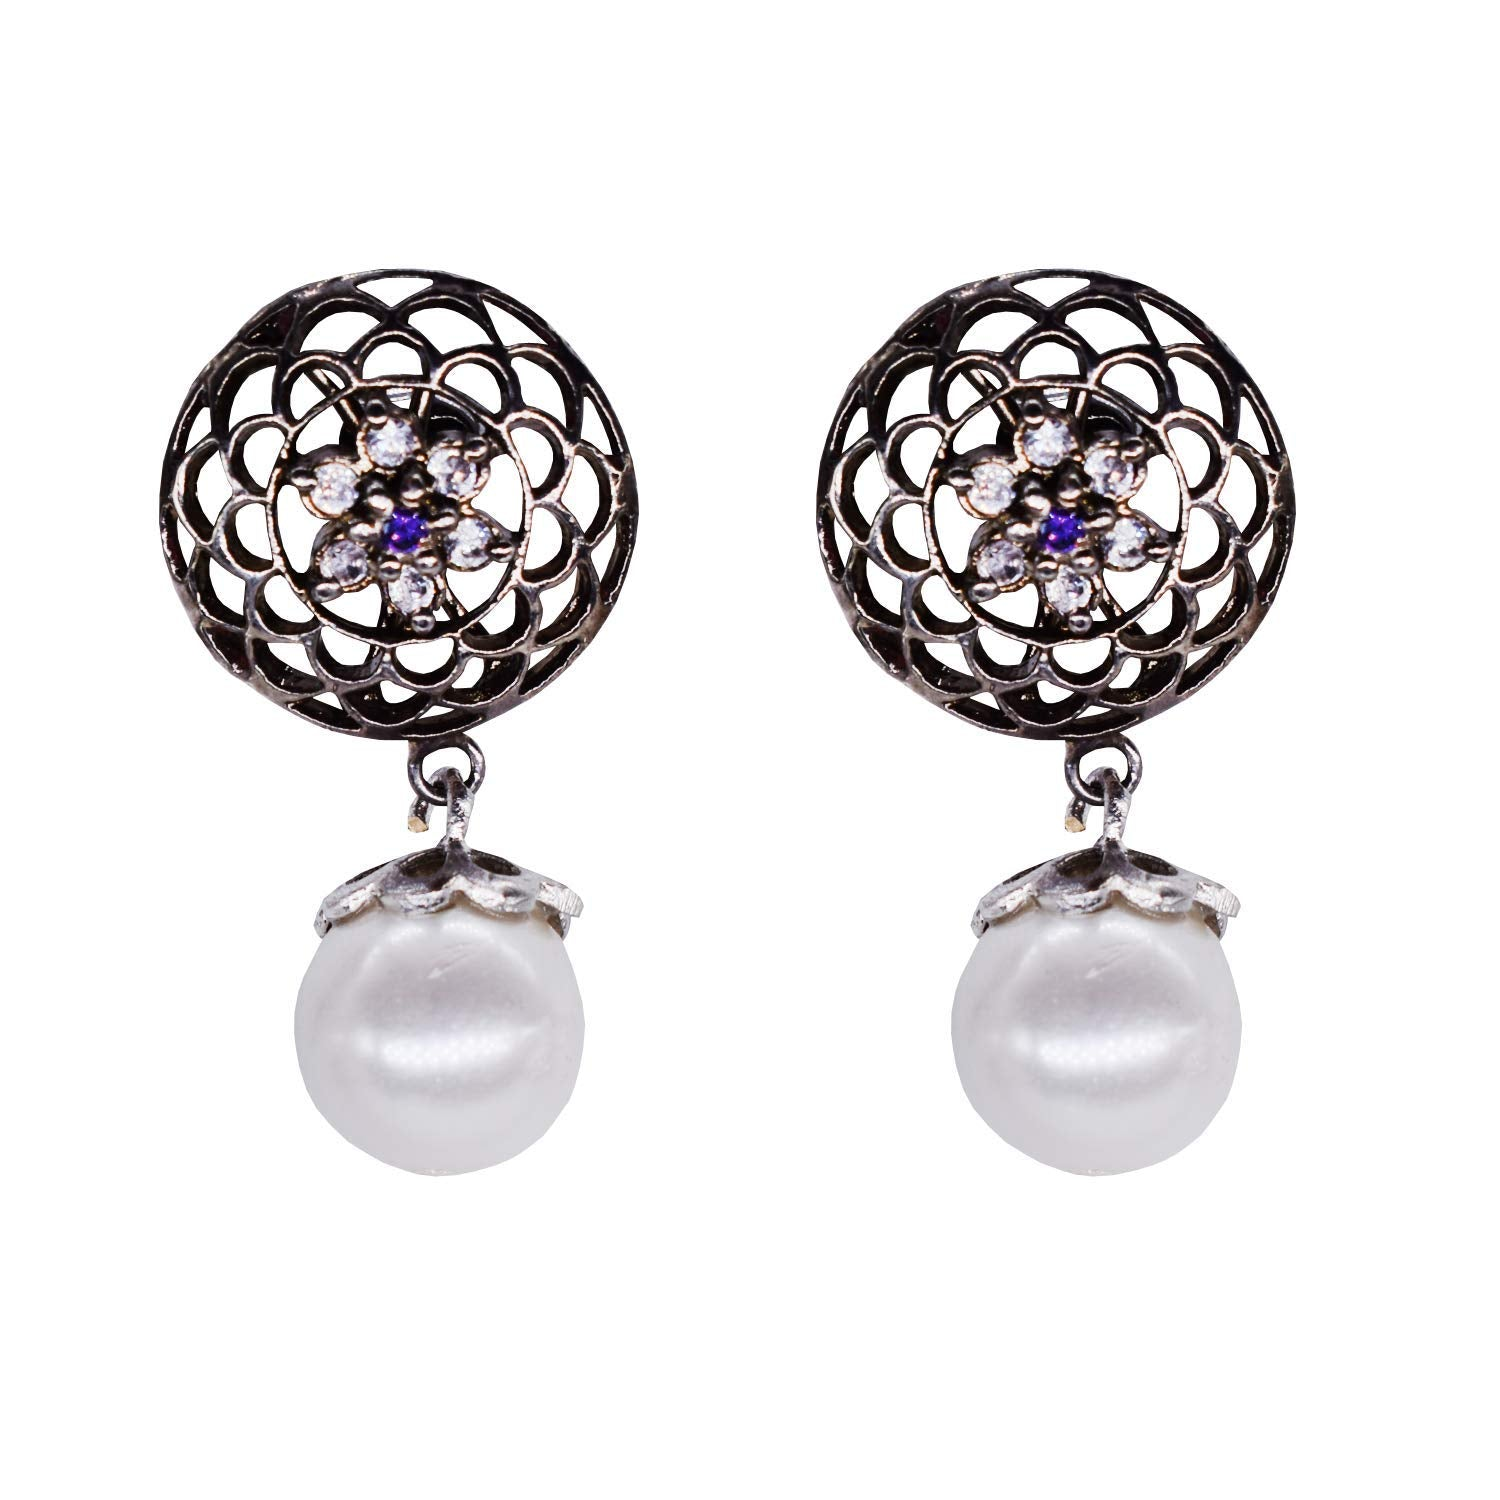 Pearl Stud With Diamond Earrings For Women - Bagaholics Gift